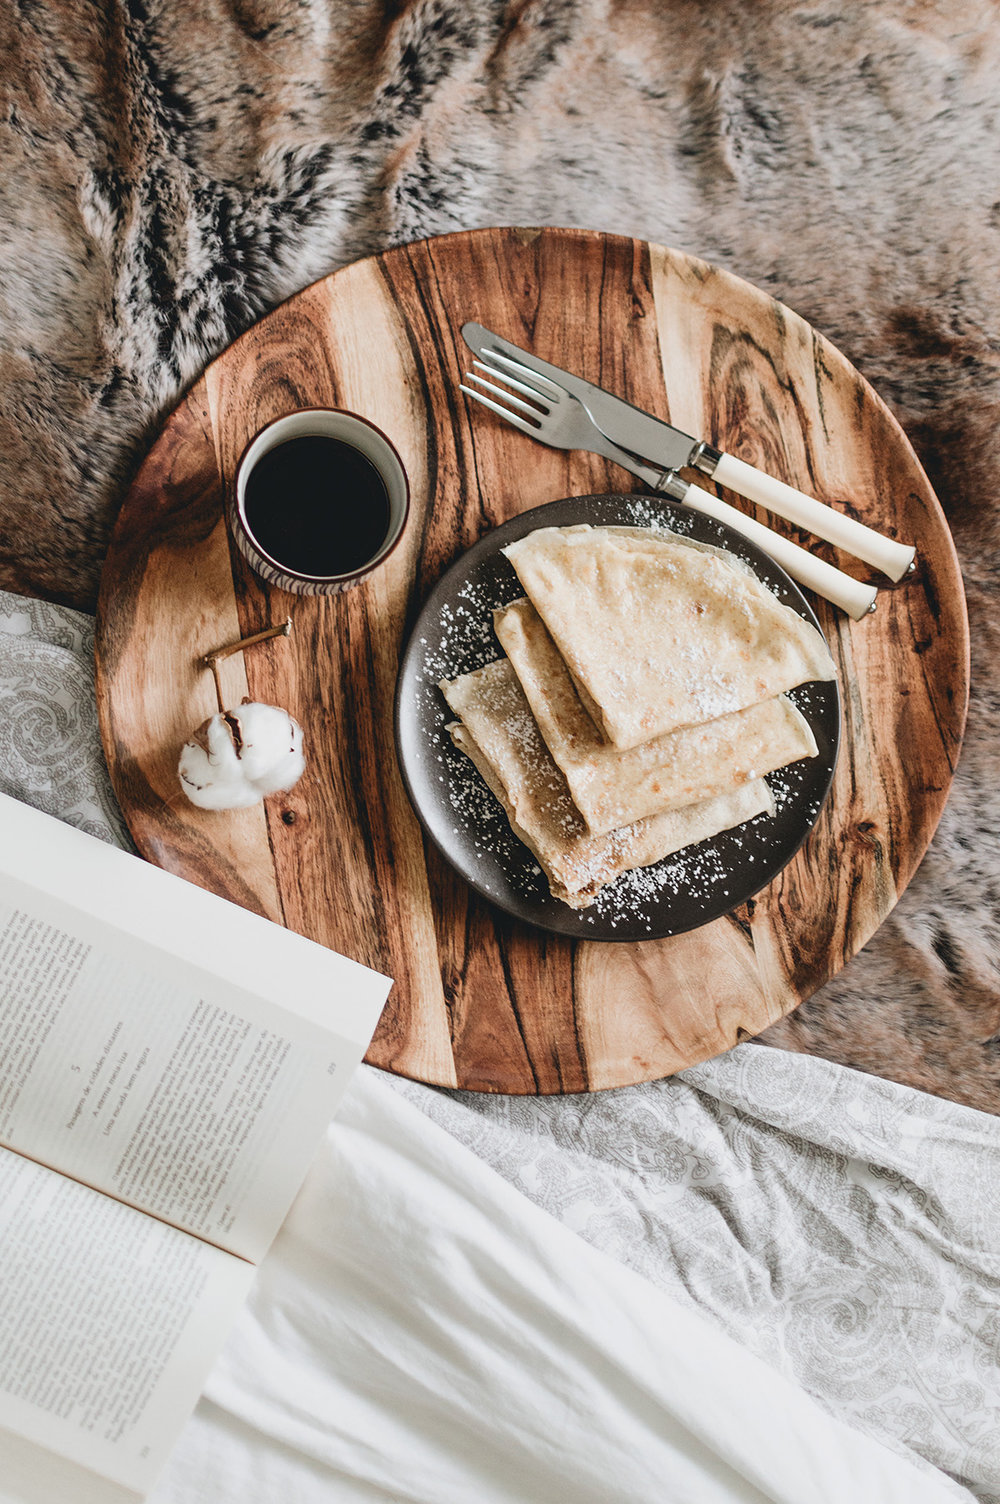 hygge-crepes-on-bed-book-Patricia-Martins-Yellowish-2019